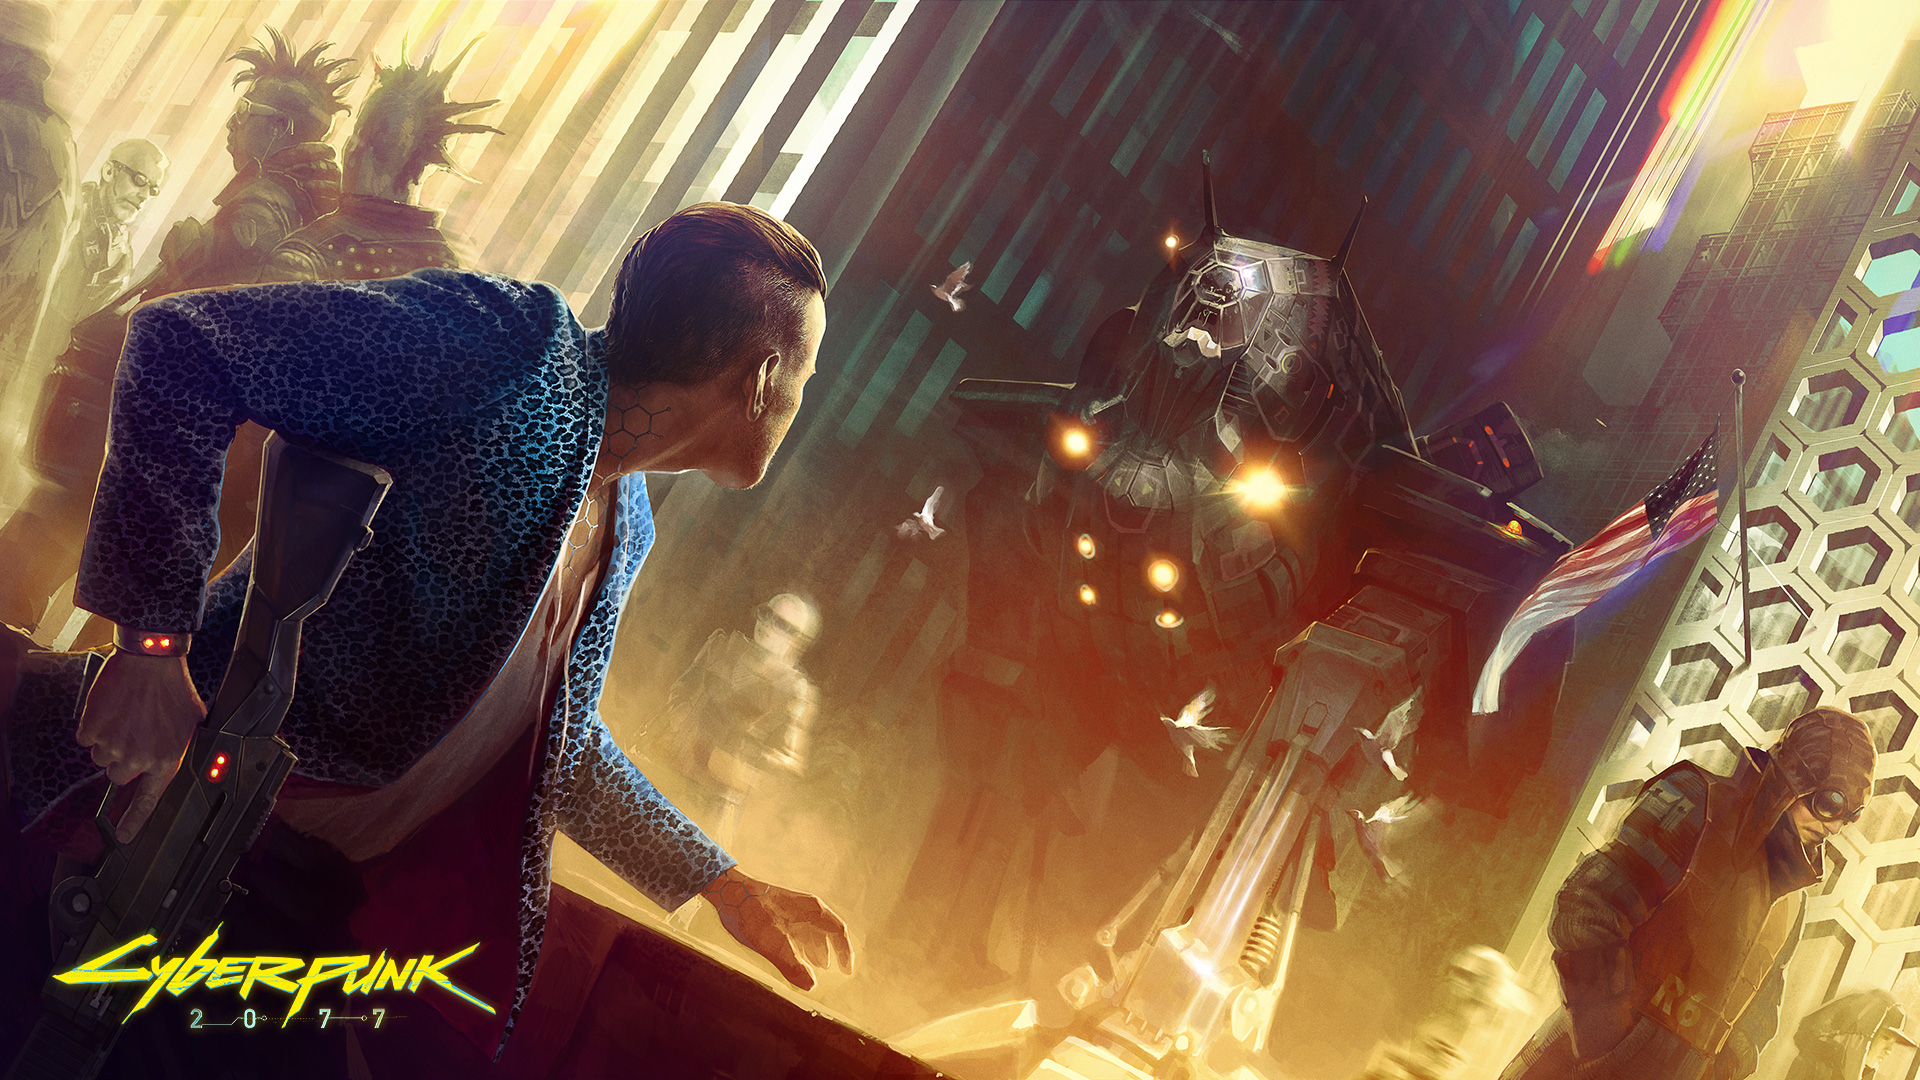 Cyberpunk 2077 Will Include Online Elements To Ensure Long Term